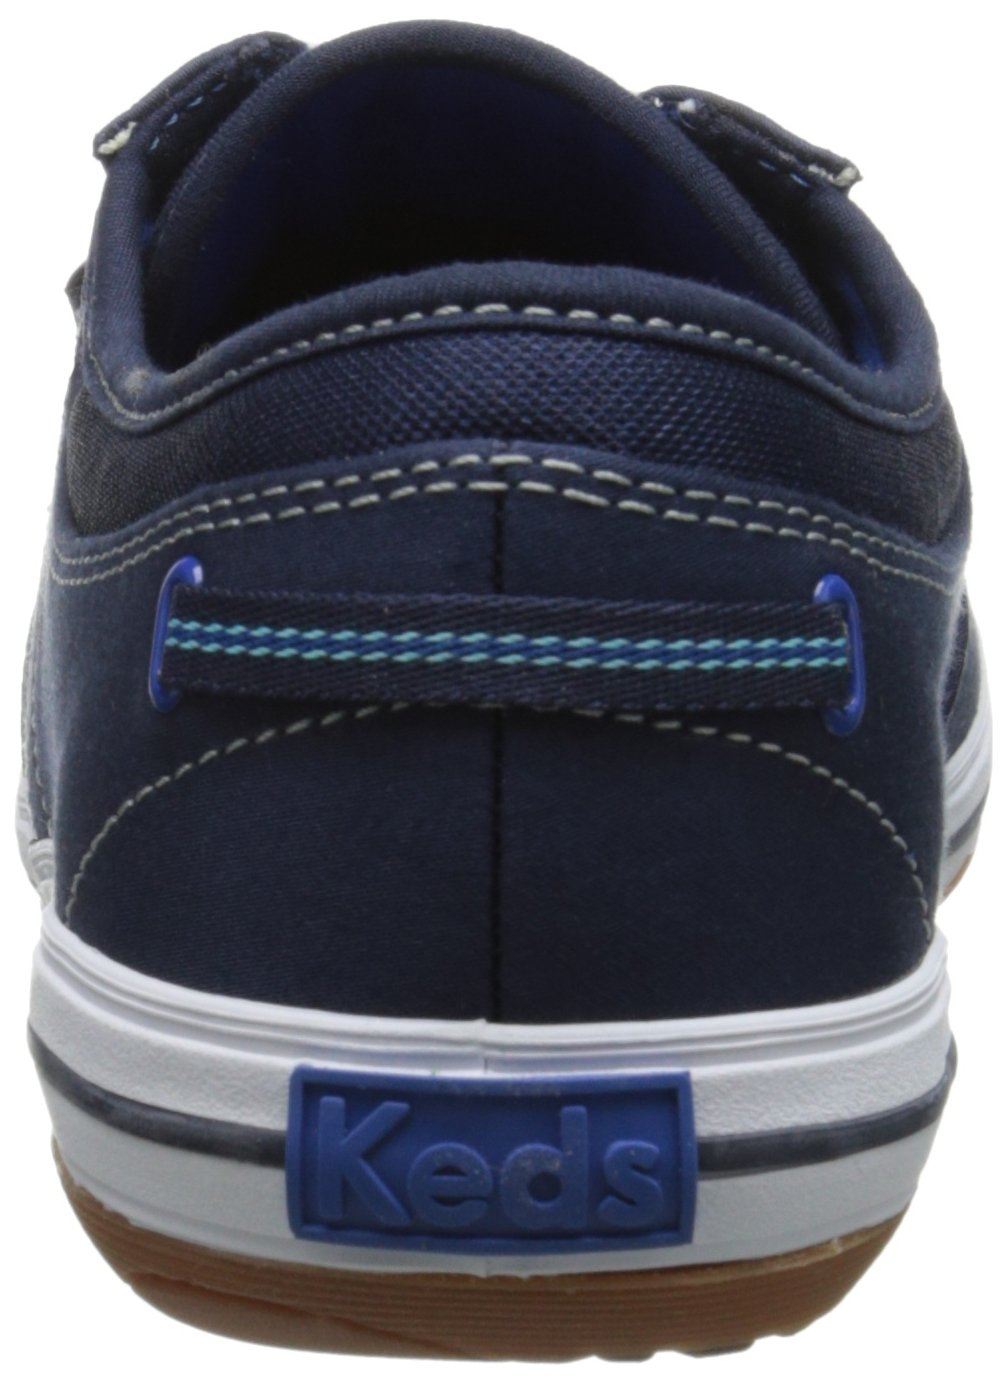 Keds Women's Craze T-Toe Twill Sneaker, Peacoat Navy, 10 M US by Keds (Image #2)